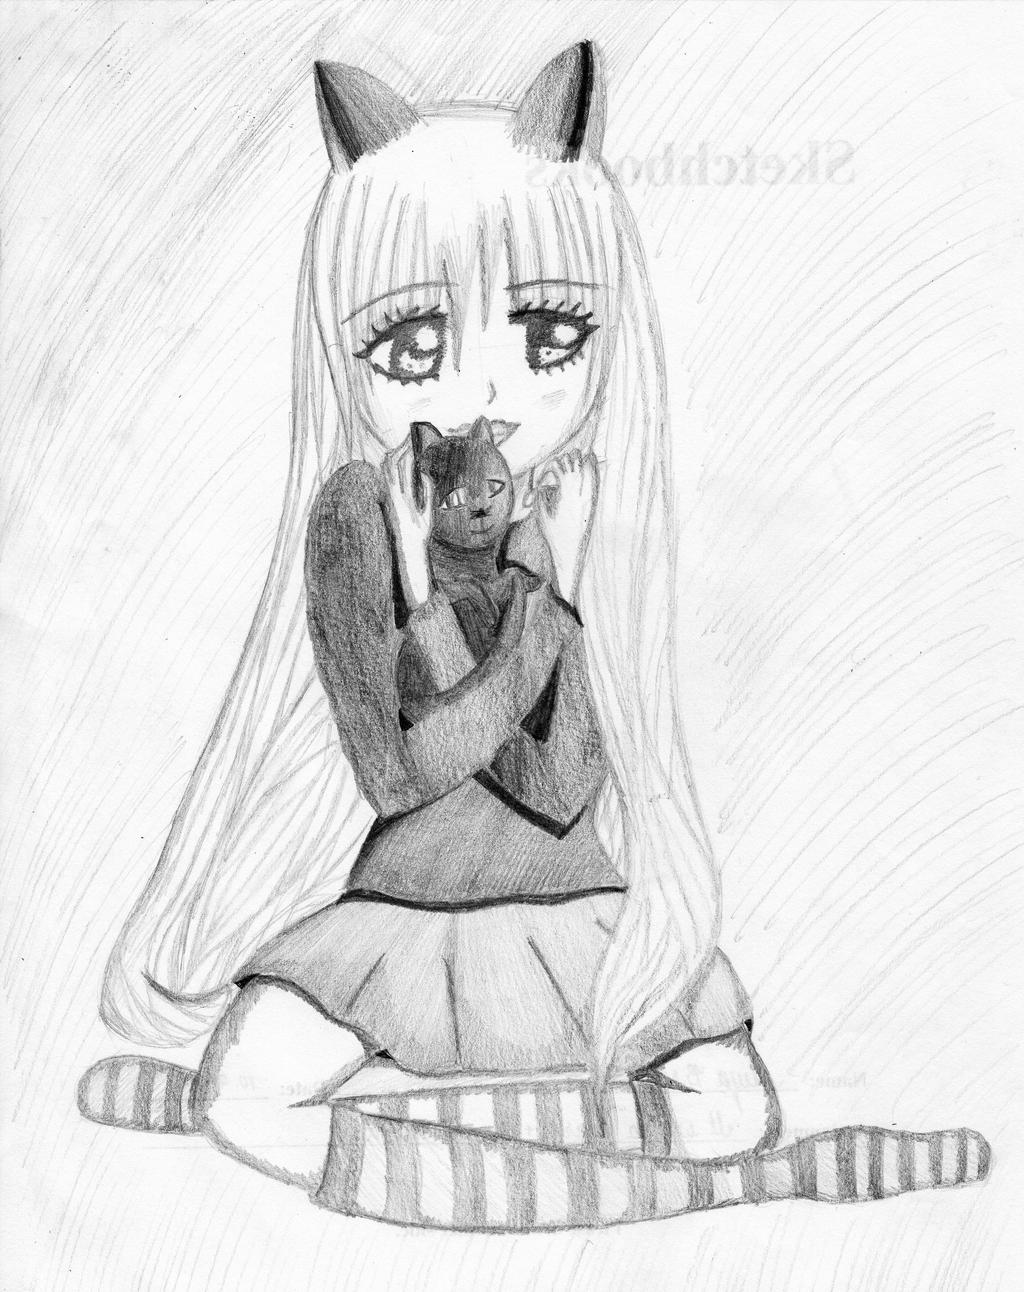 Cute Cat Girl by SketchArt2 on DeviantArt